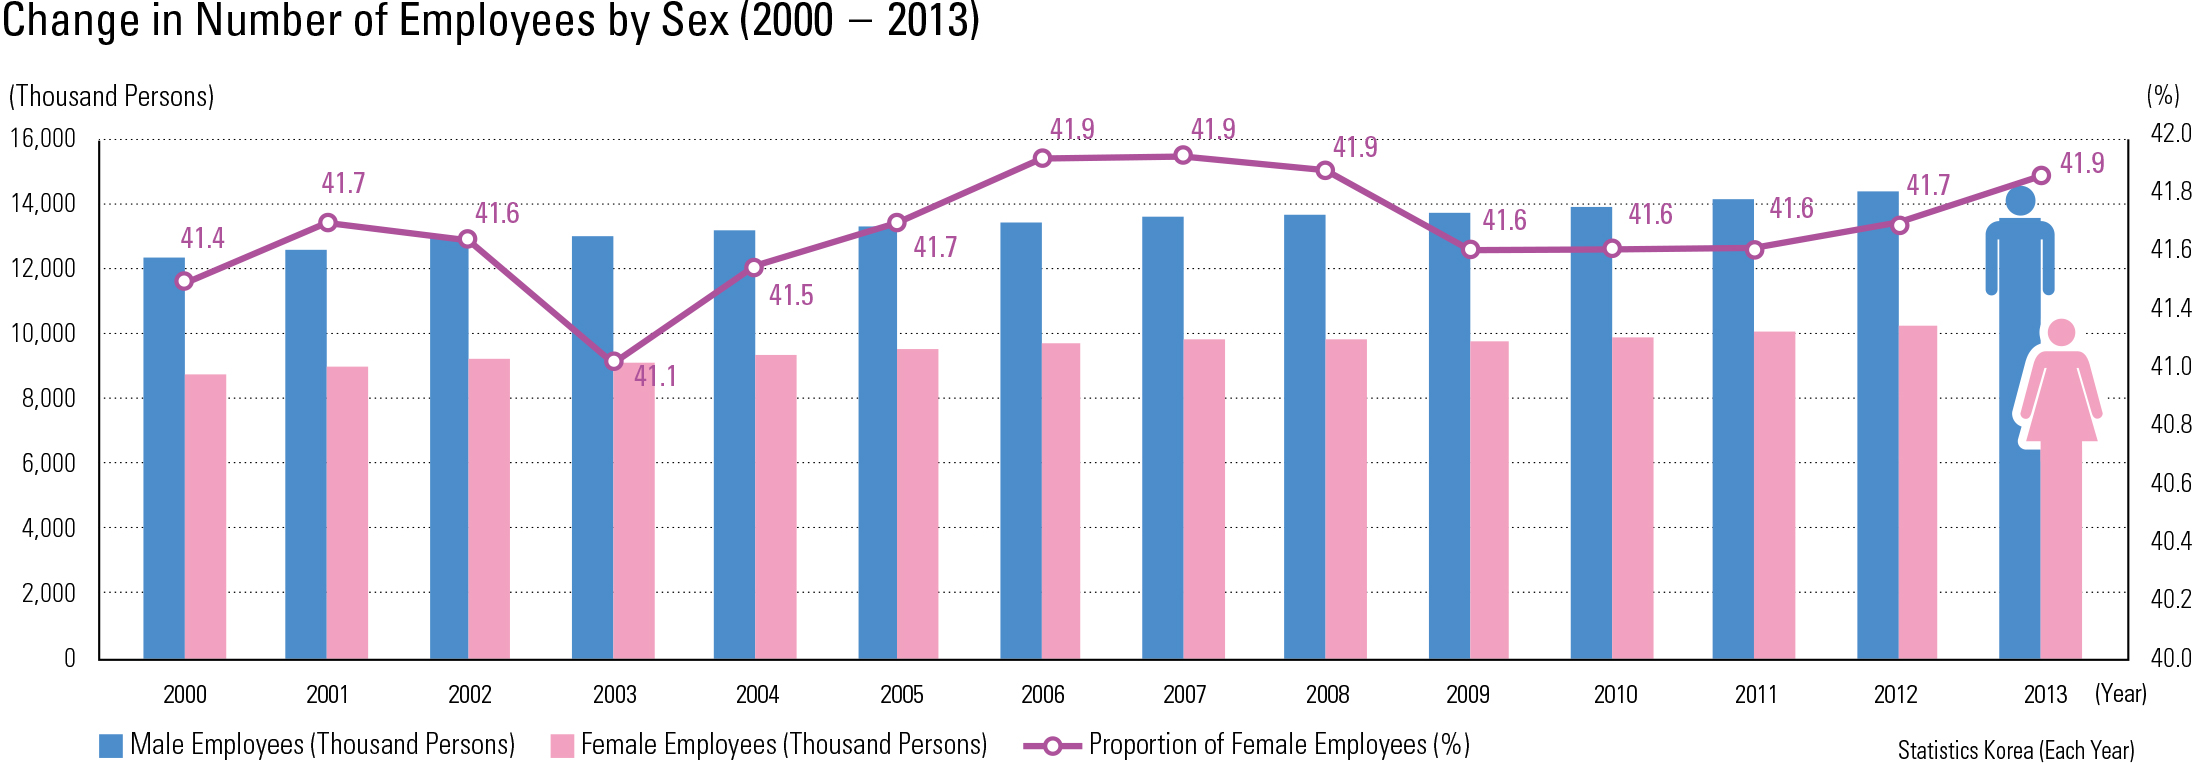 Change in Number of Employees by Sex (2000 – 2013)